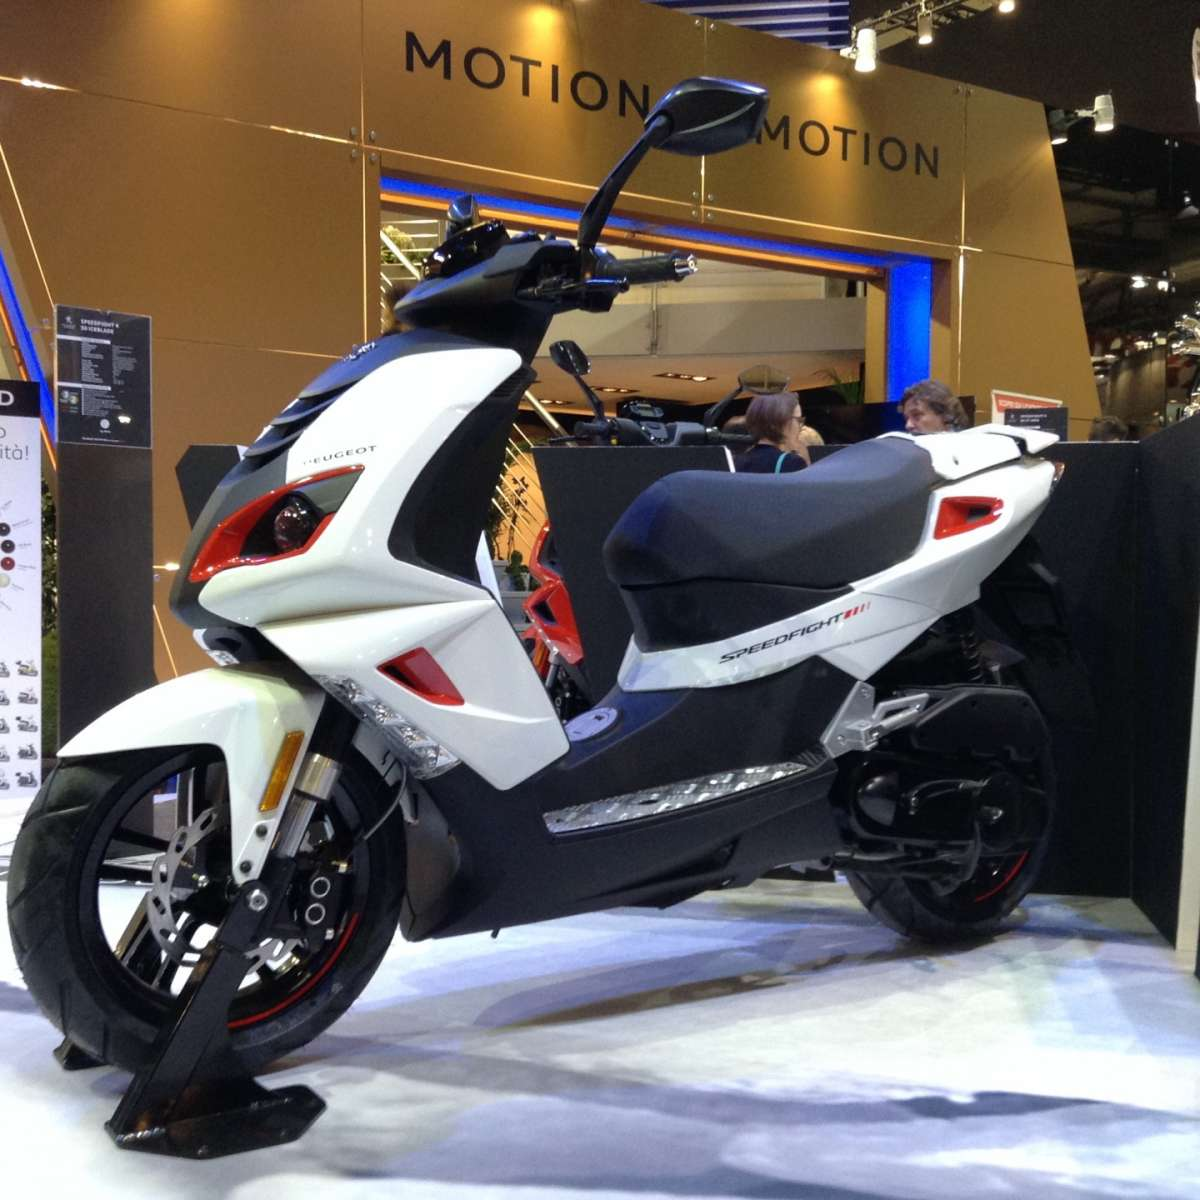 Peugeot Speedfight 50 Total Sport 2016